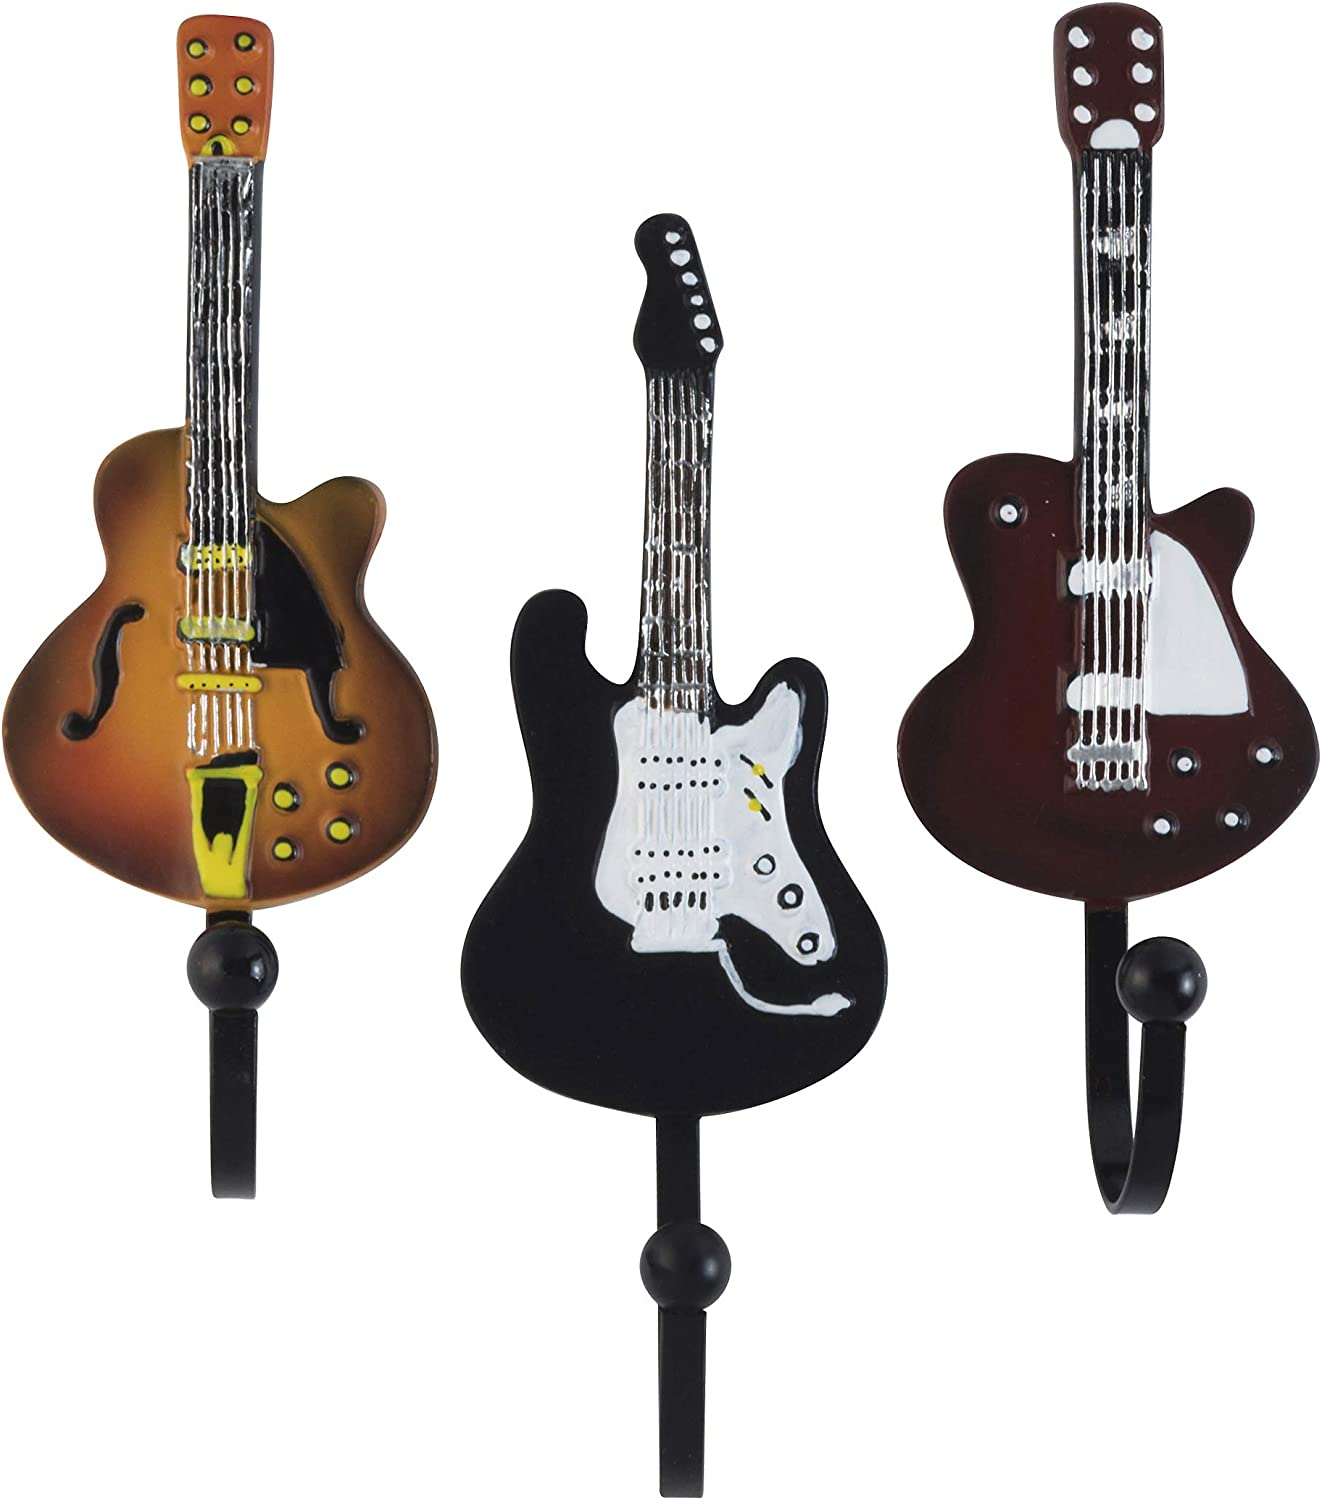 Decorative Vintage Guitar Resin Wall Coat Hooks in Tan, Brown and Black Colors (Set of 3)